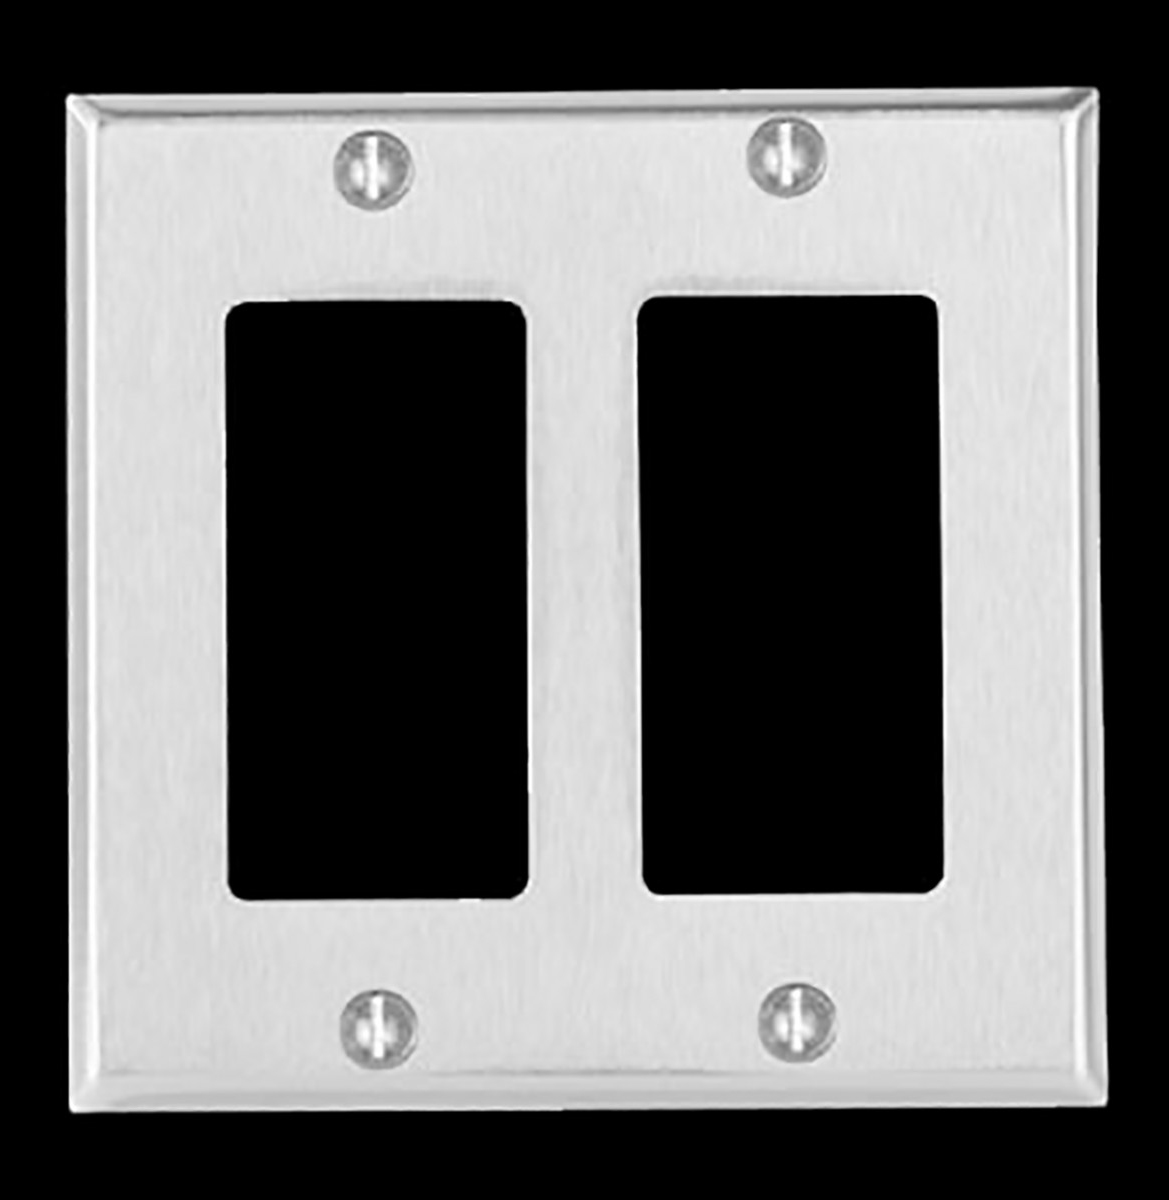 Switchplate Brushed Stainless Steel Double GFI Switch Plate Wall Plates Switch Plates